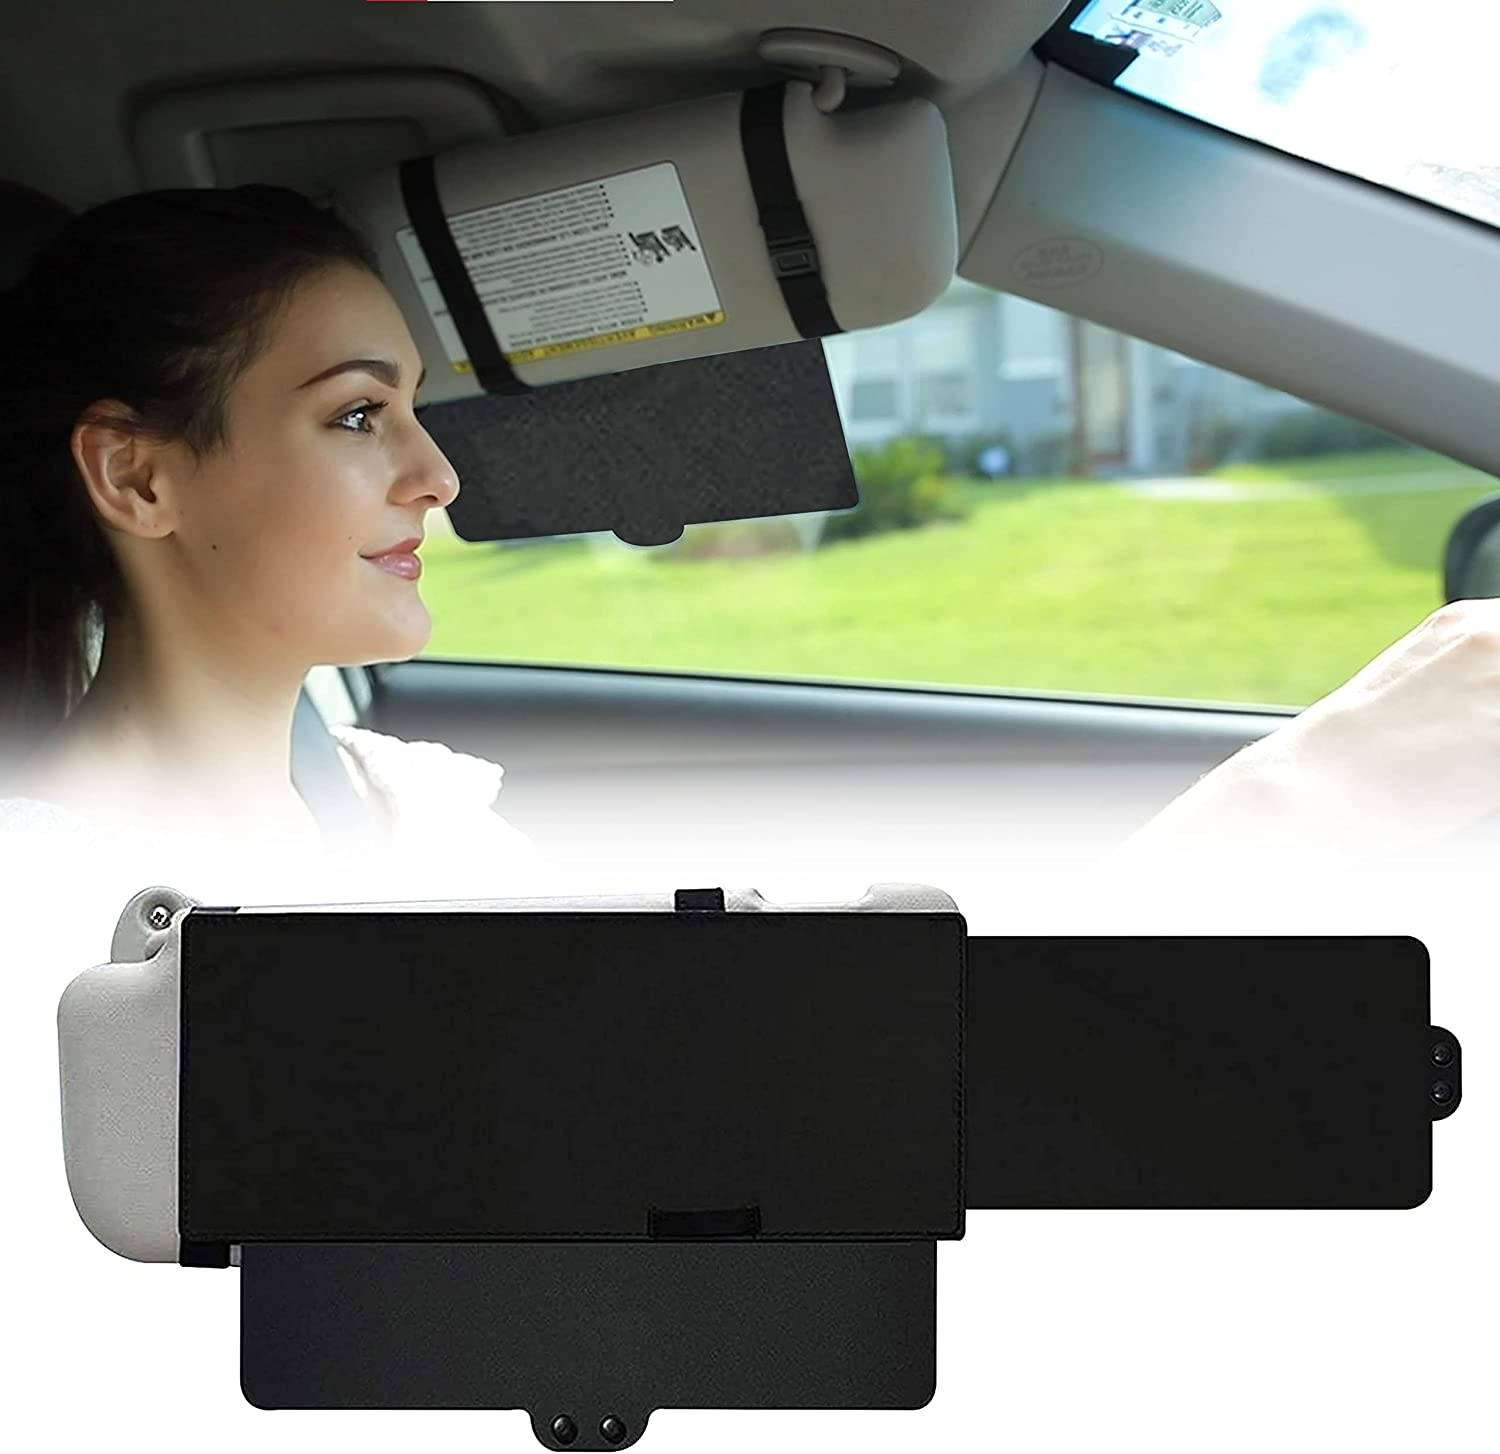 EcoNour Car Sun Visor Extender | One Pull Down Sunshade and One Side Sunshade Sun Block Piece | Protects from Sun Glare, UV Rays, Snow Blindness | Universal Fit for Most of The Cars